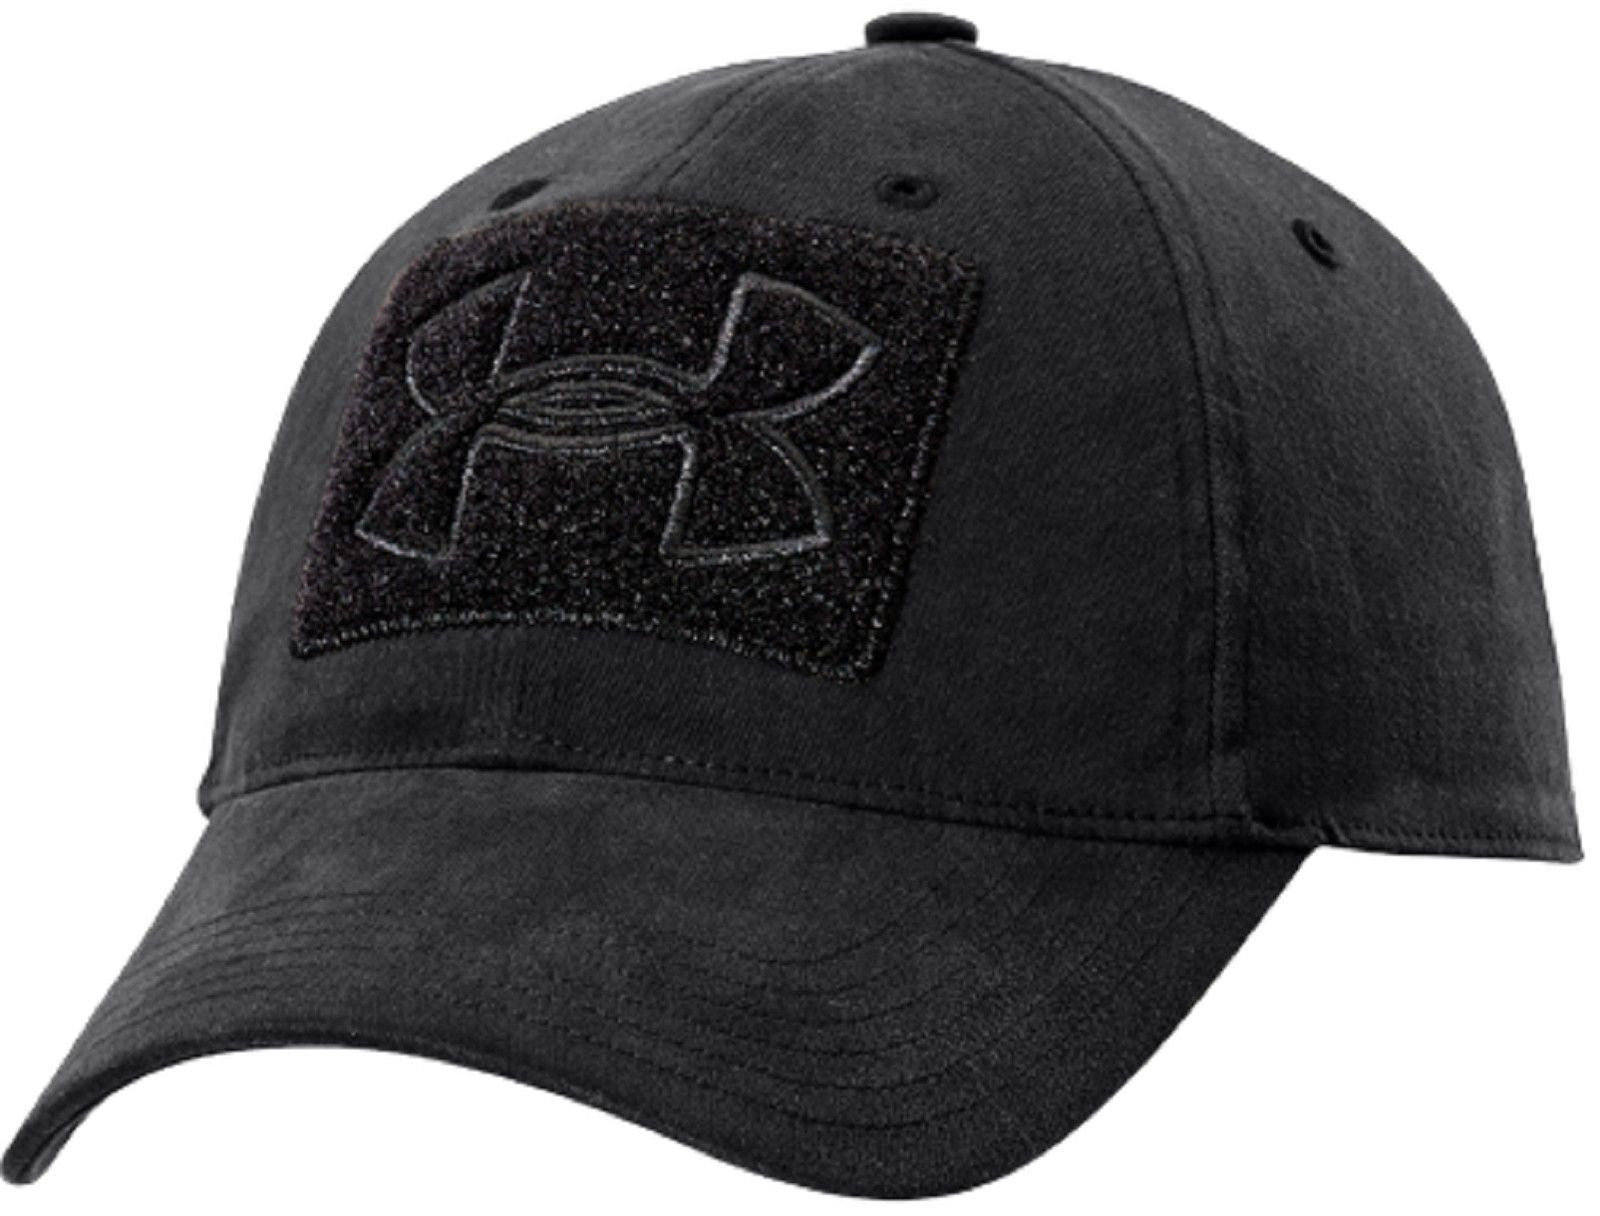 Under Armour Tactical Patch Cap - UA Black or Coyote Brown